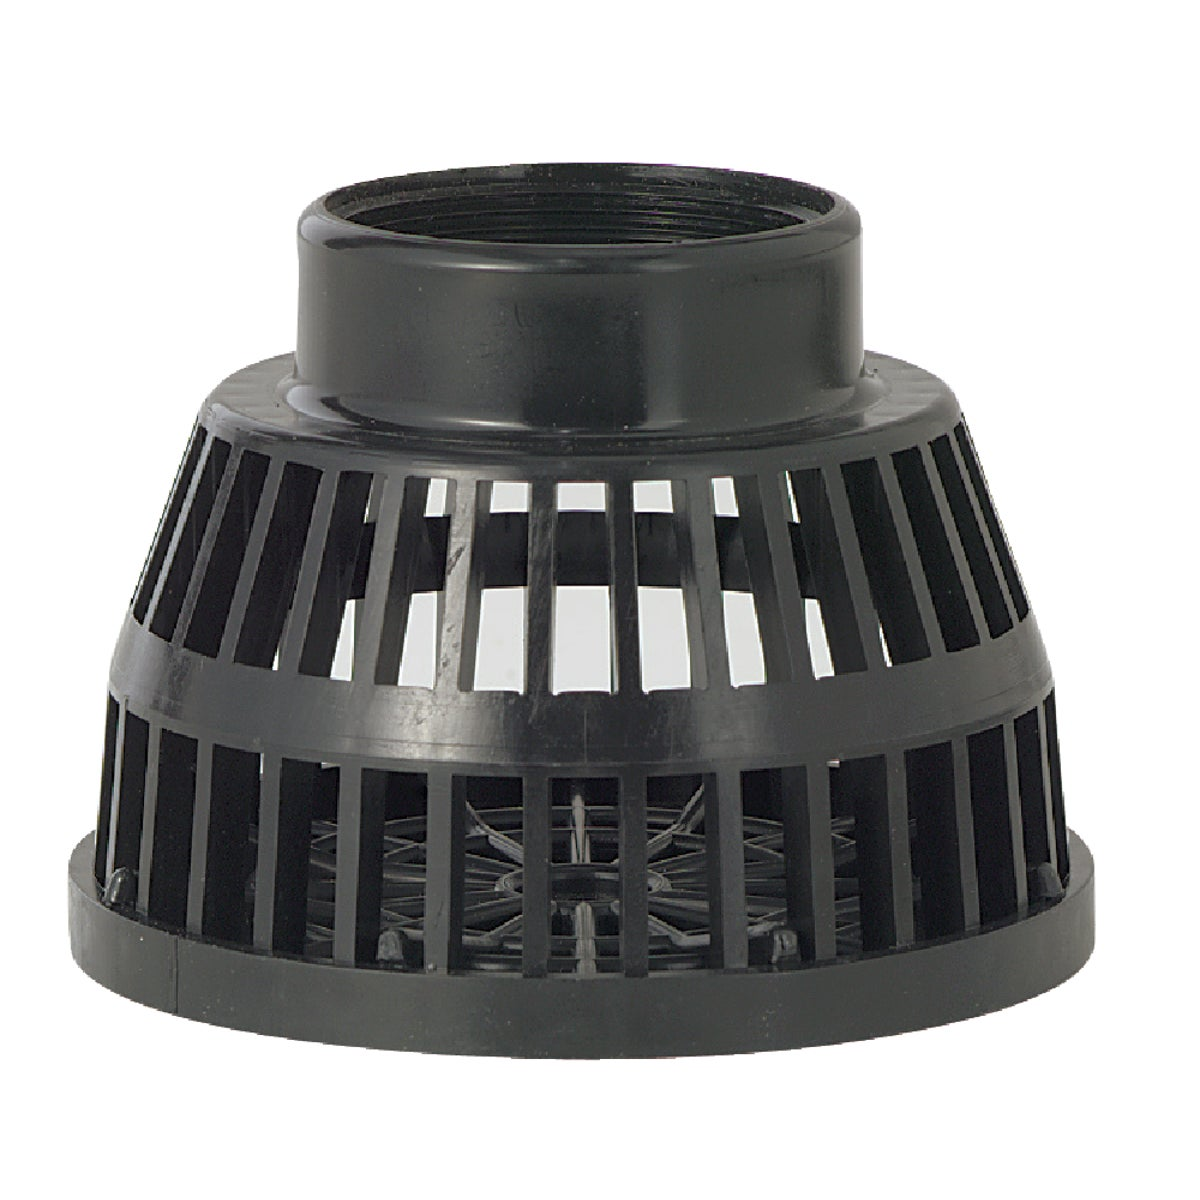 POLY HOSE STRAINER - 70002780 by Apache Hose Belting